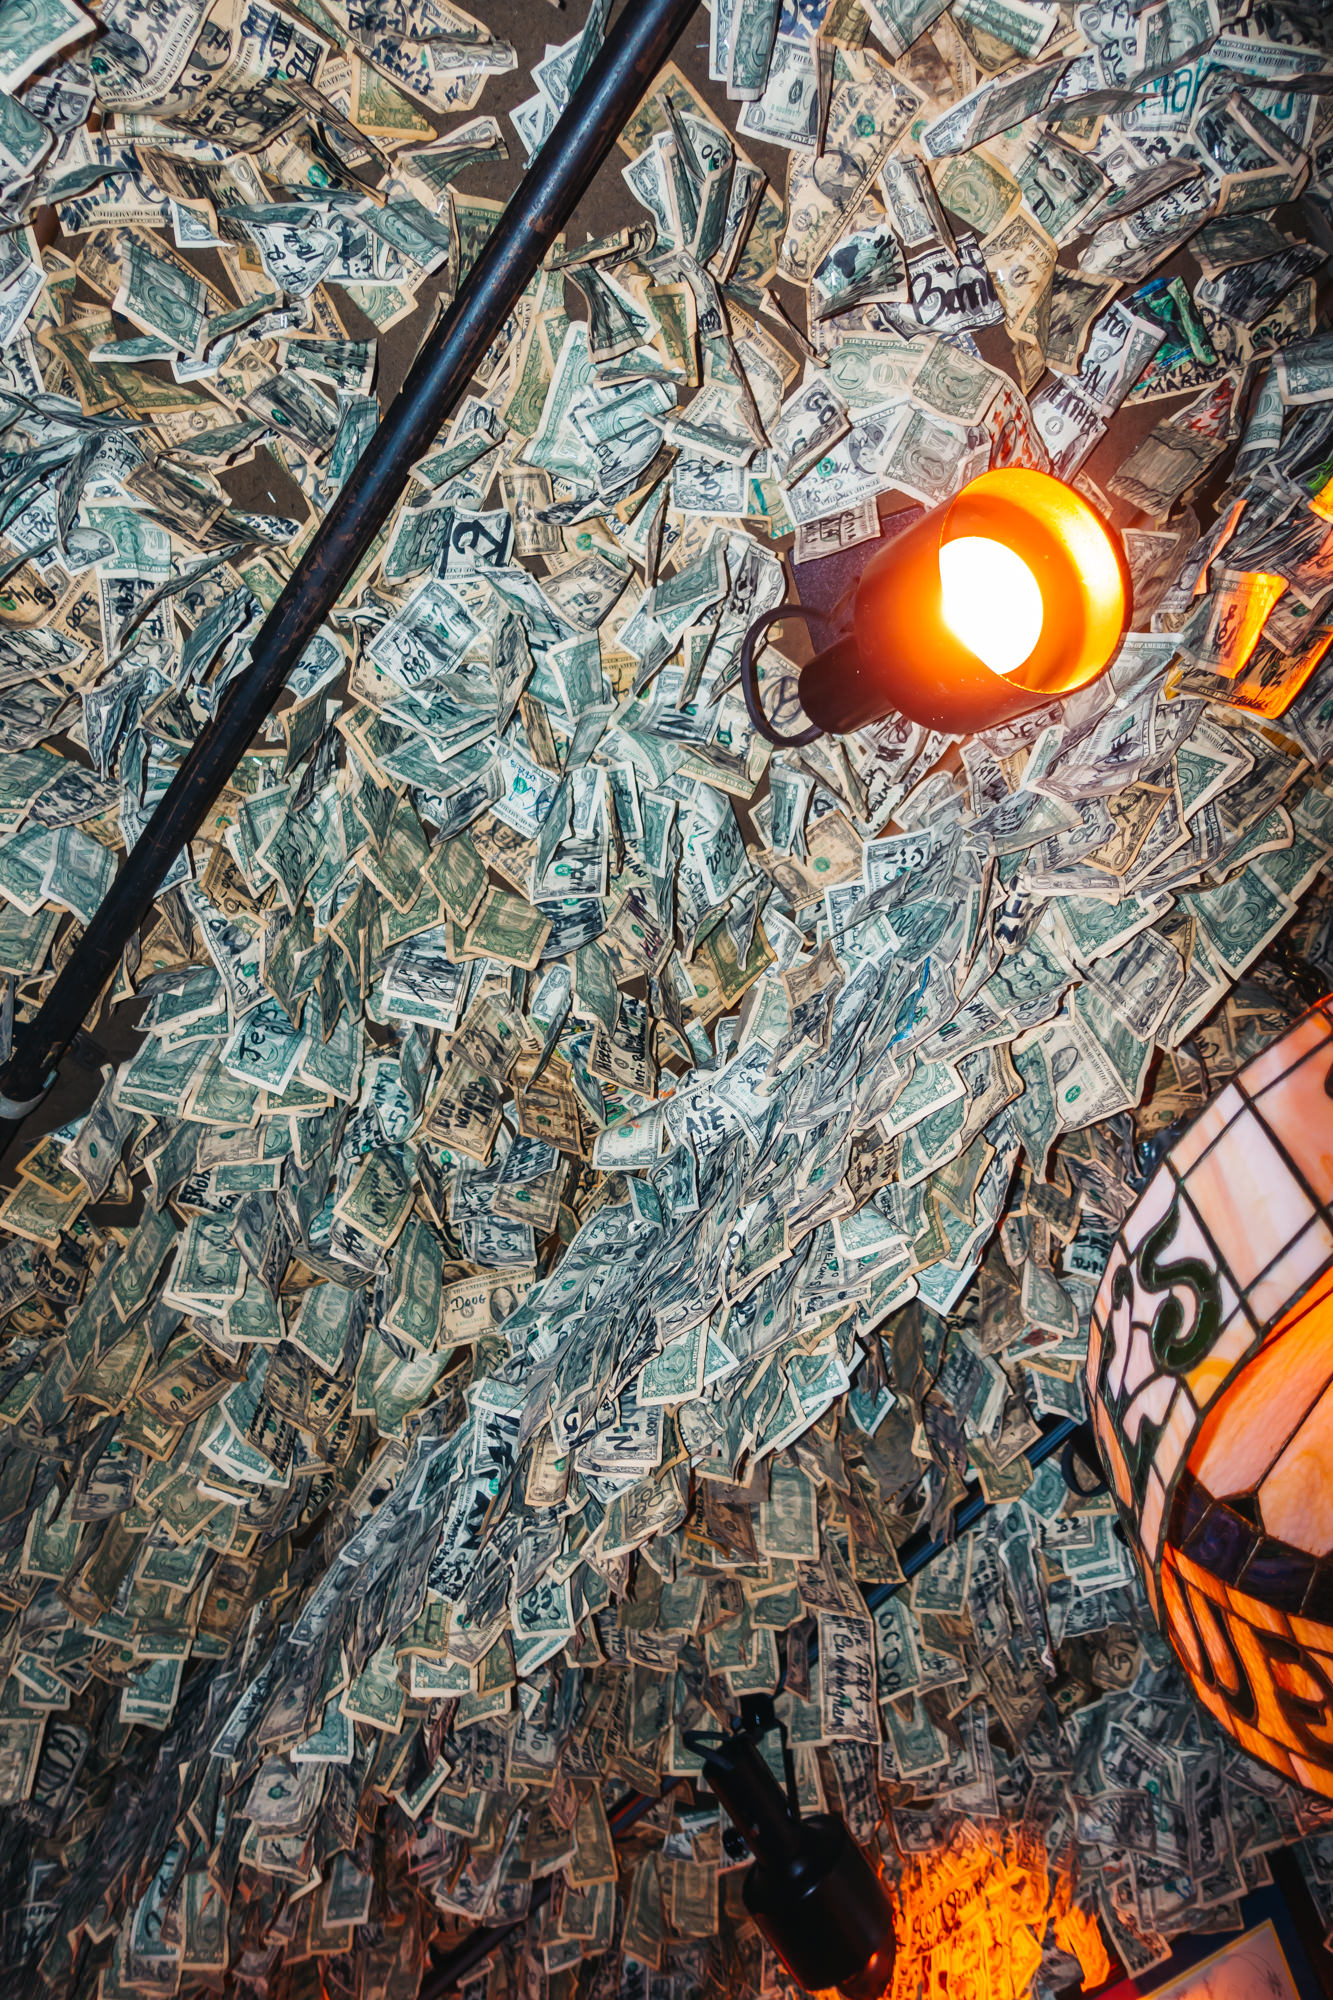 More dollar bills on the ceiling